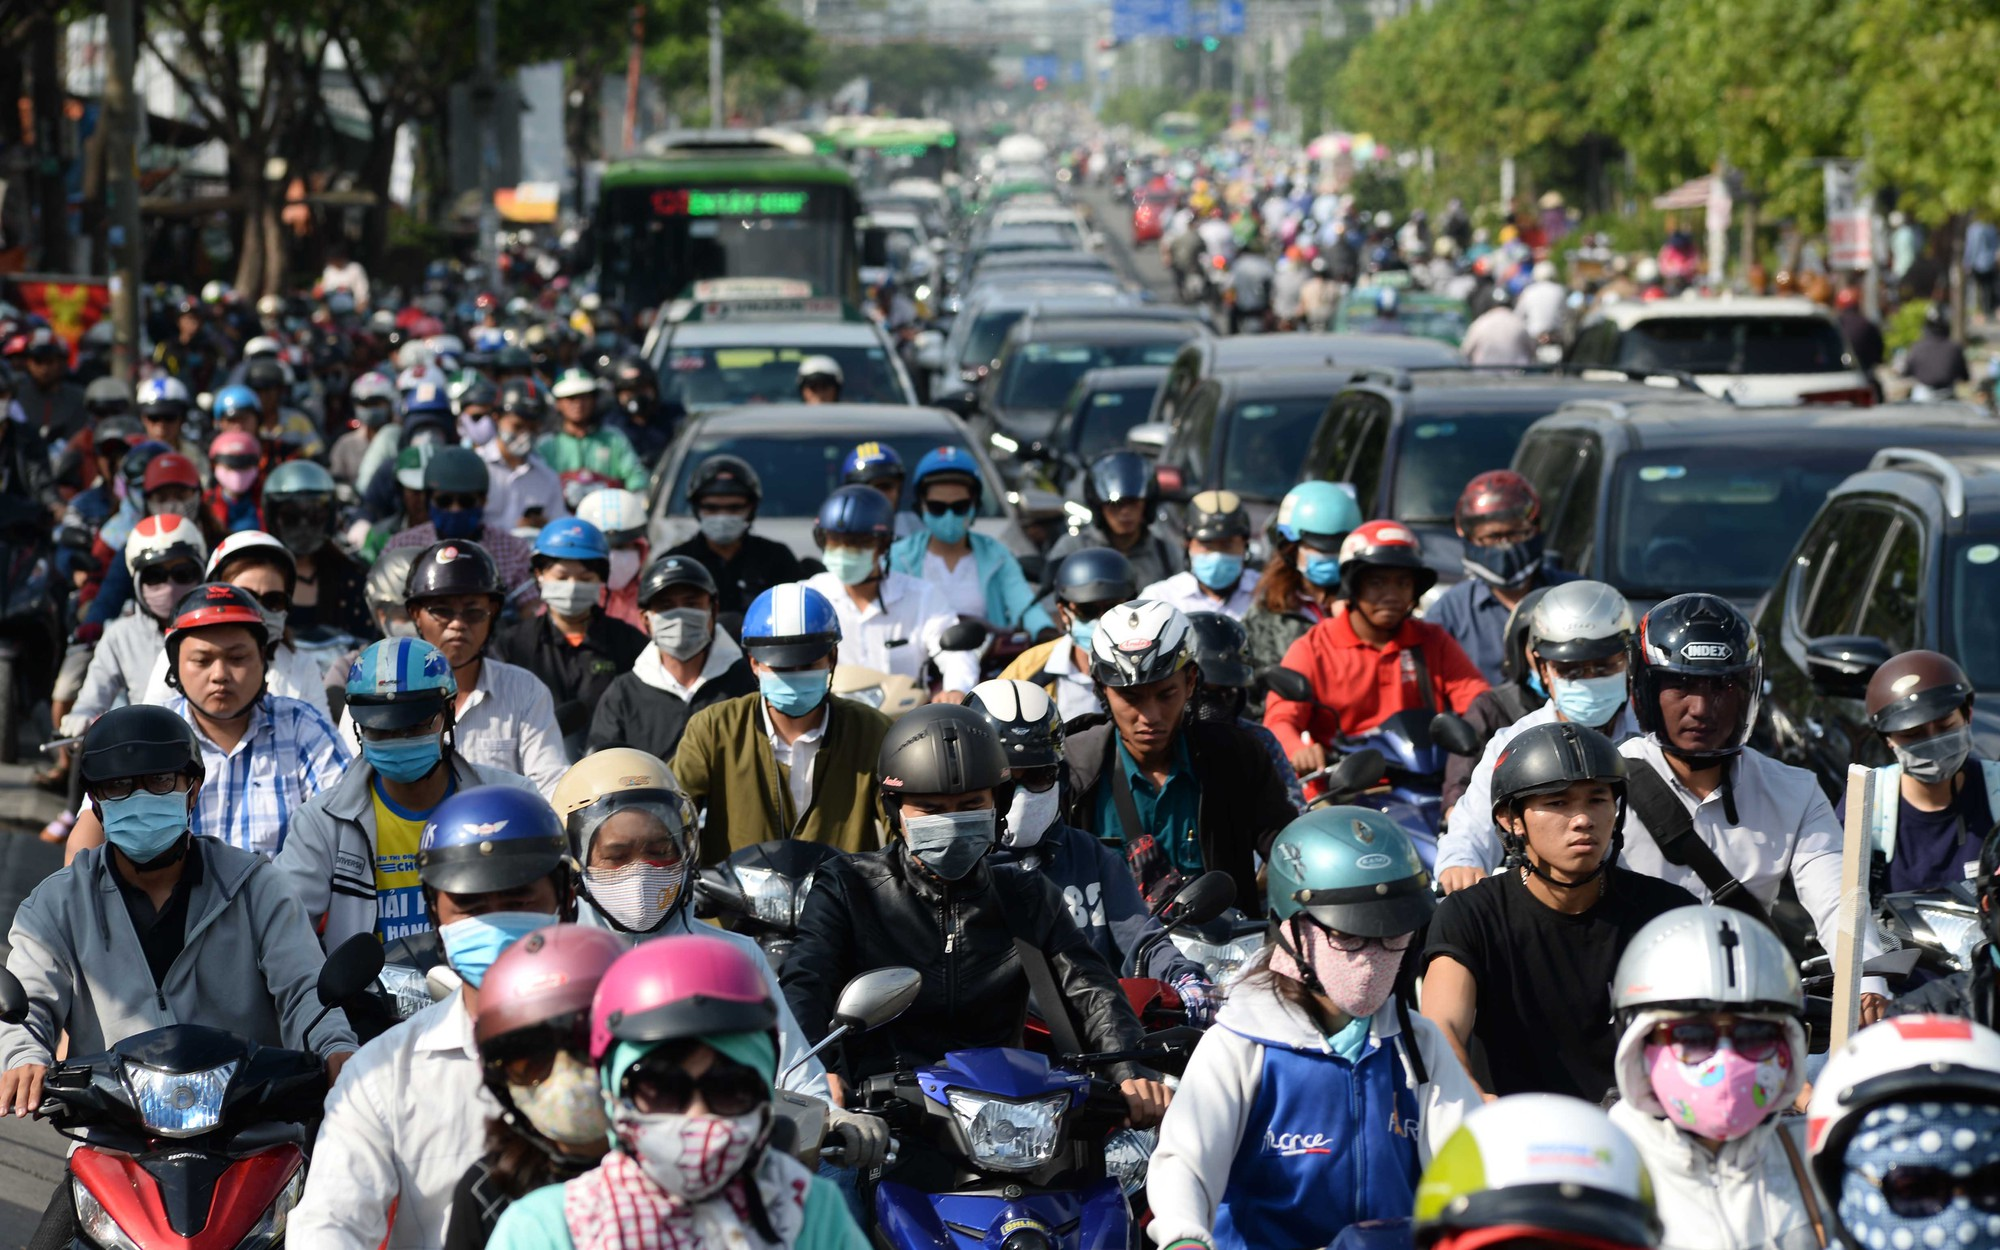 Congestion in southern Ho Chi Minh City requires 'drastic measures' to improve traffic infrastructure